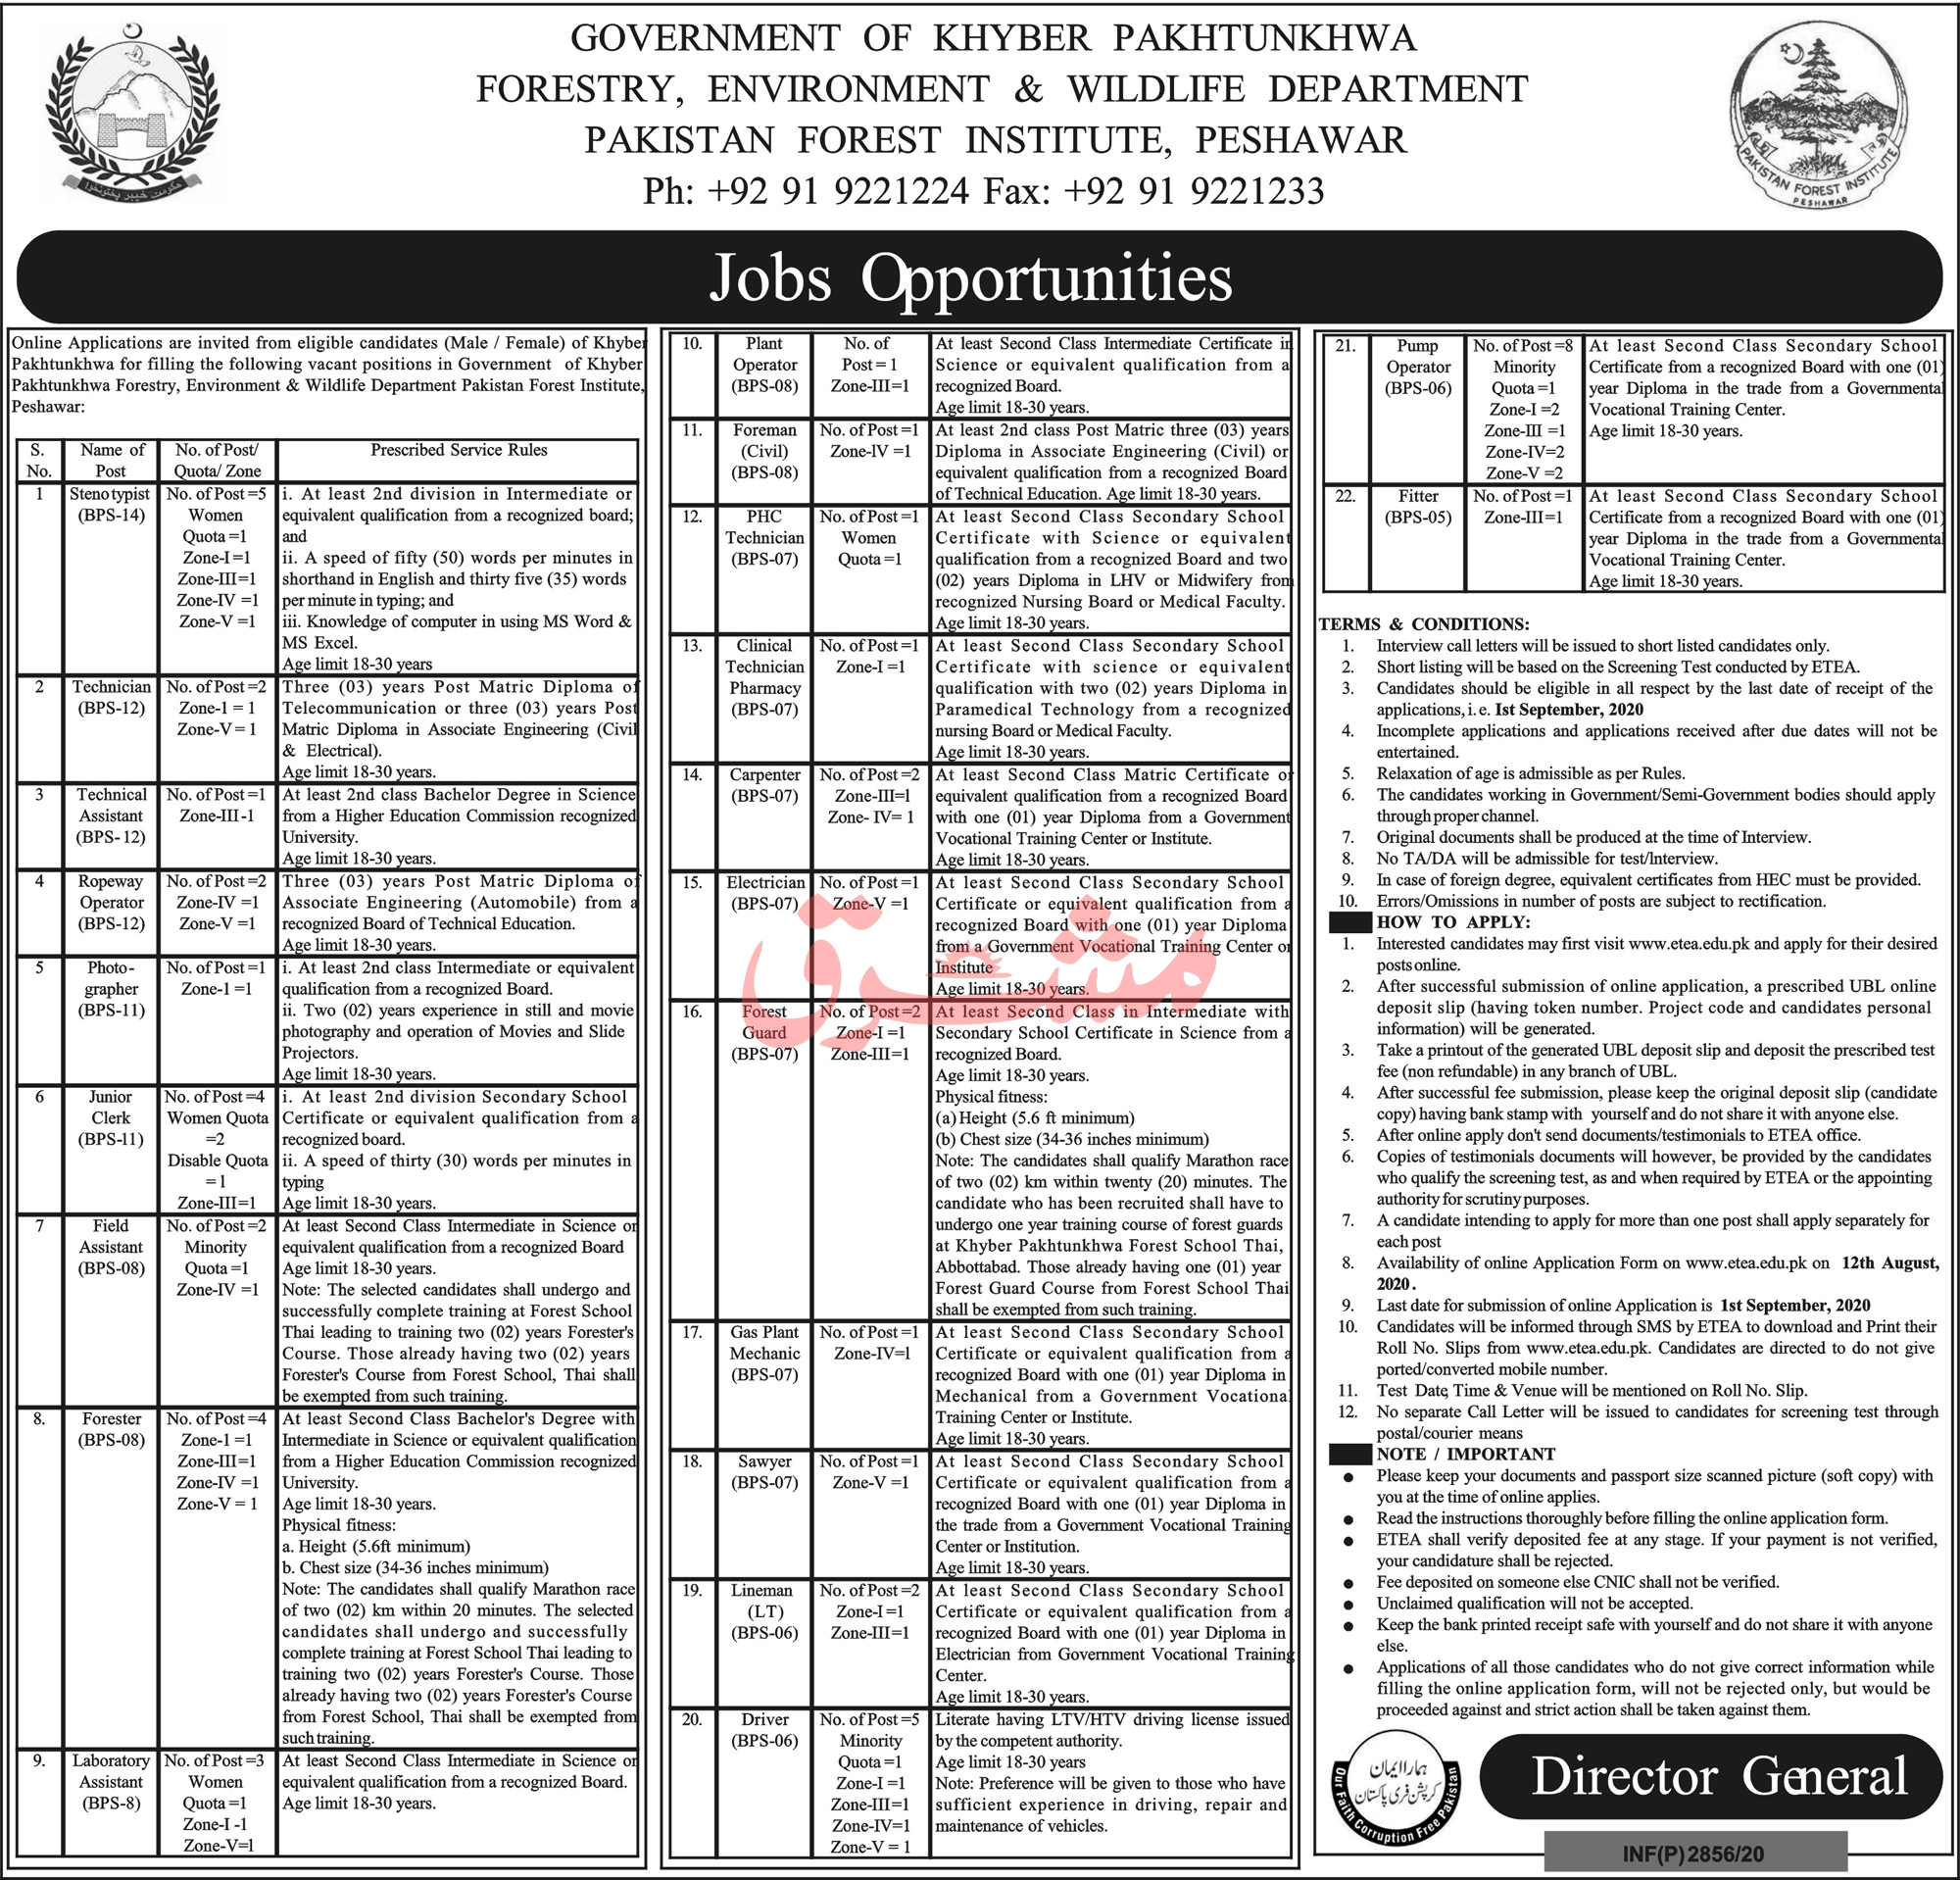 Pakistan Forest Institute Jobs 2020 in Peshawar KPK via ETEA